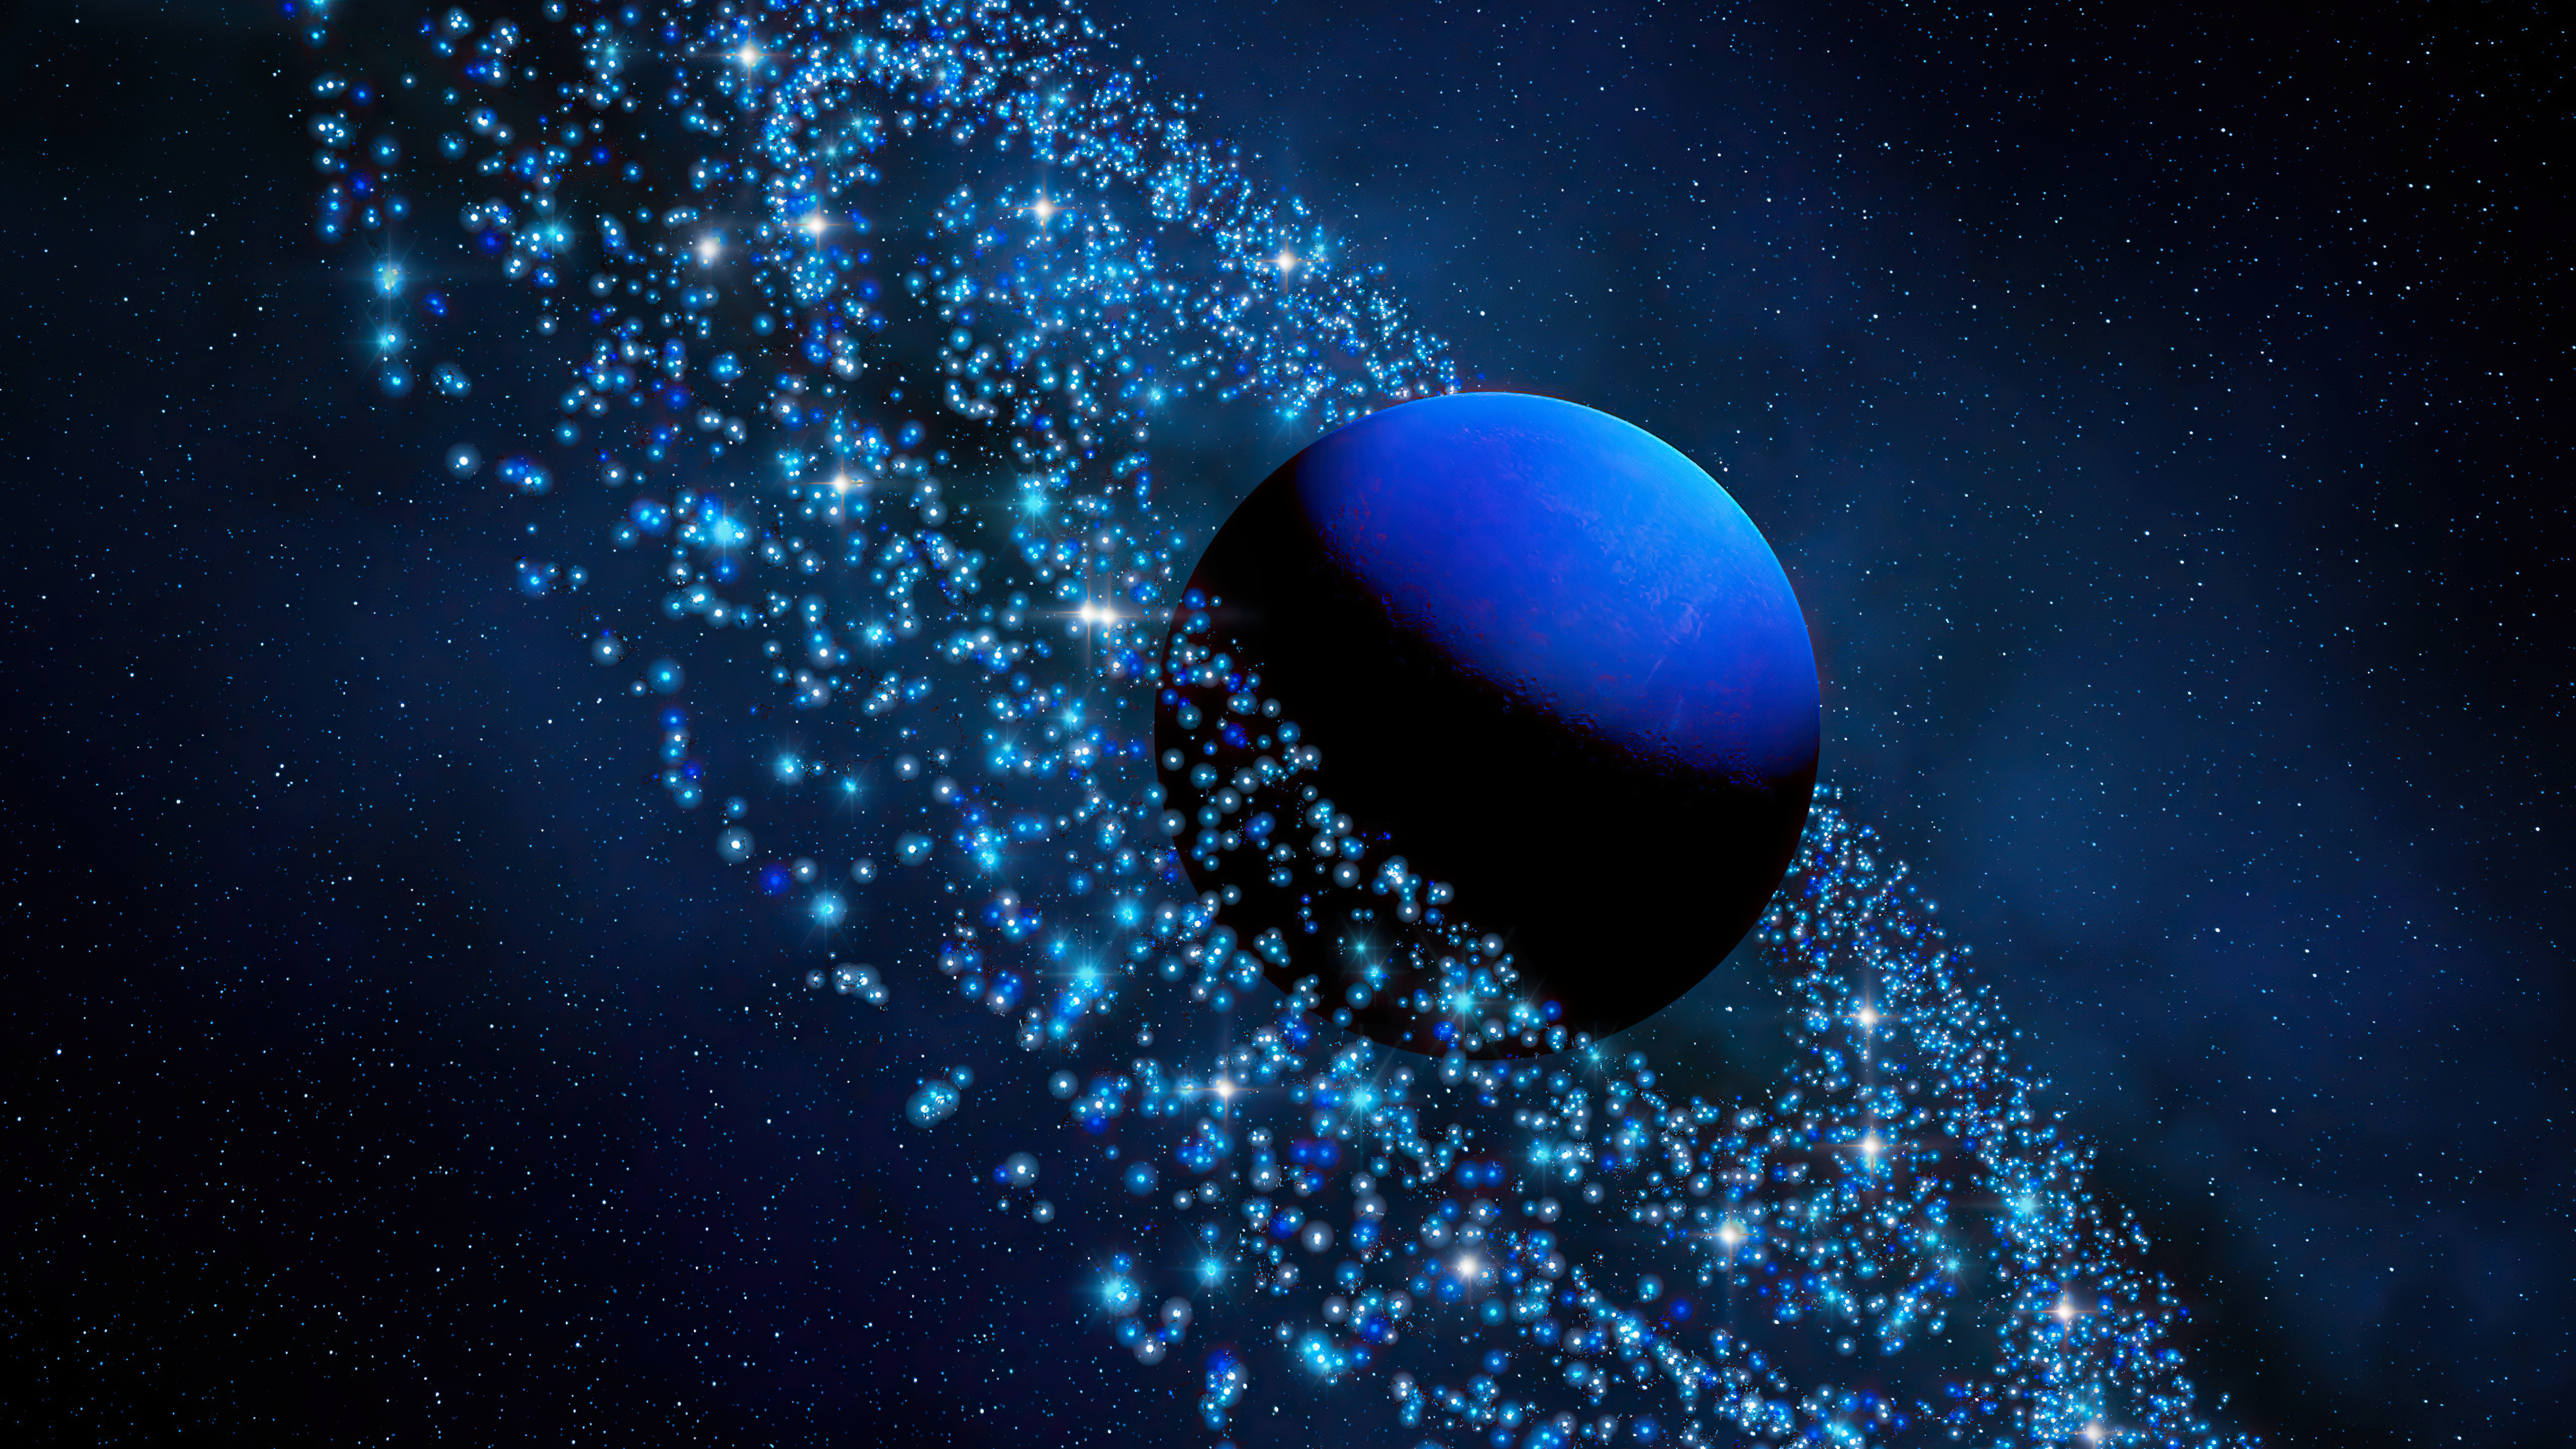 Wallpaper Neptune with asteroids